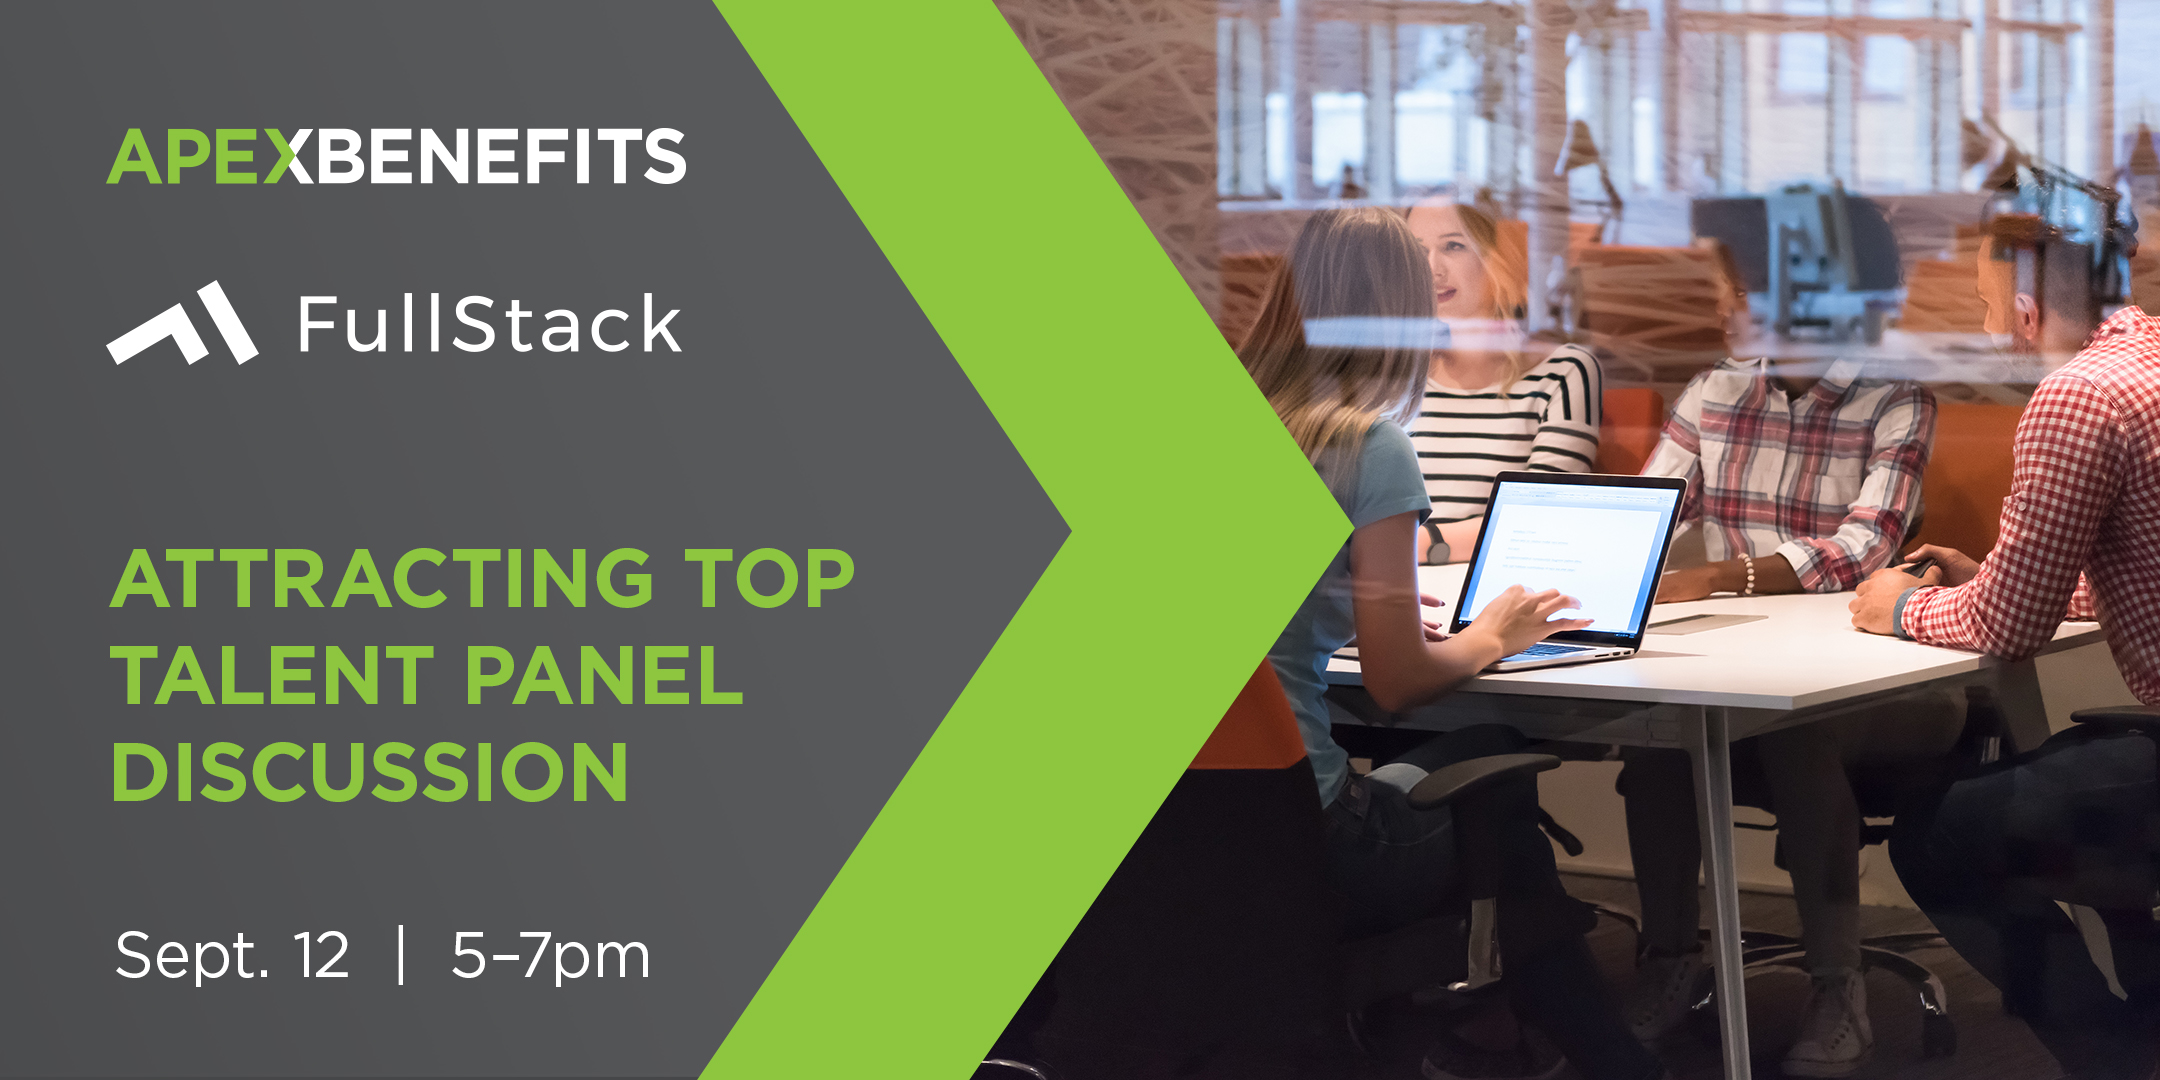 Attracting Top Talent Panel Discussion